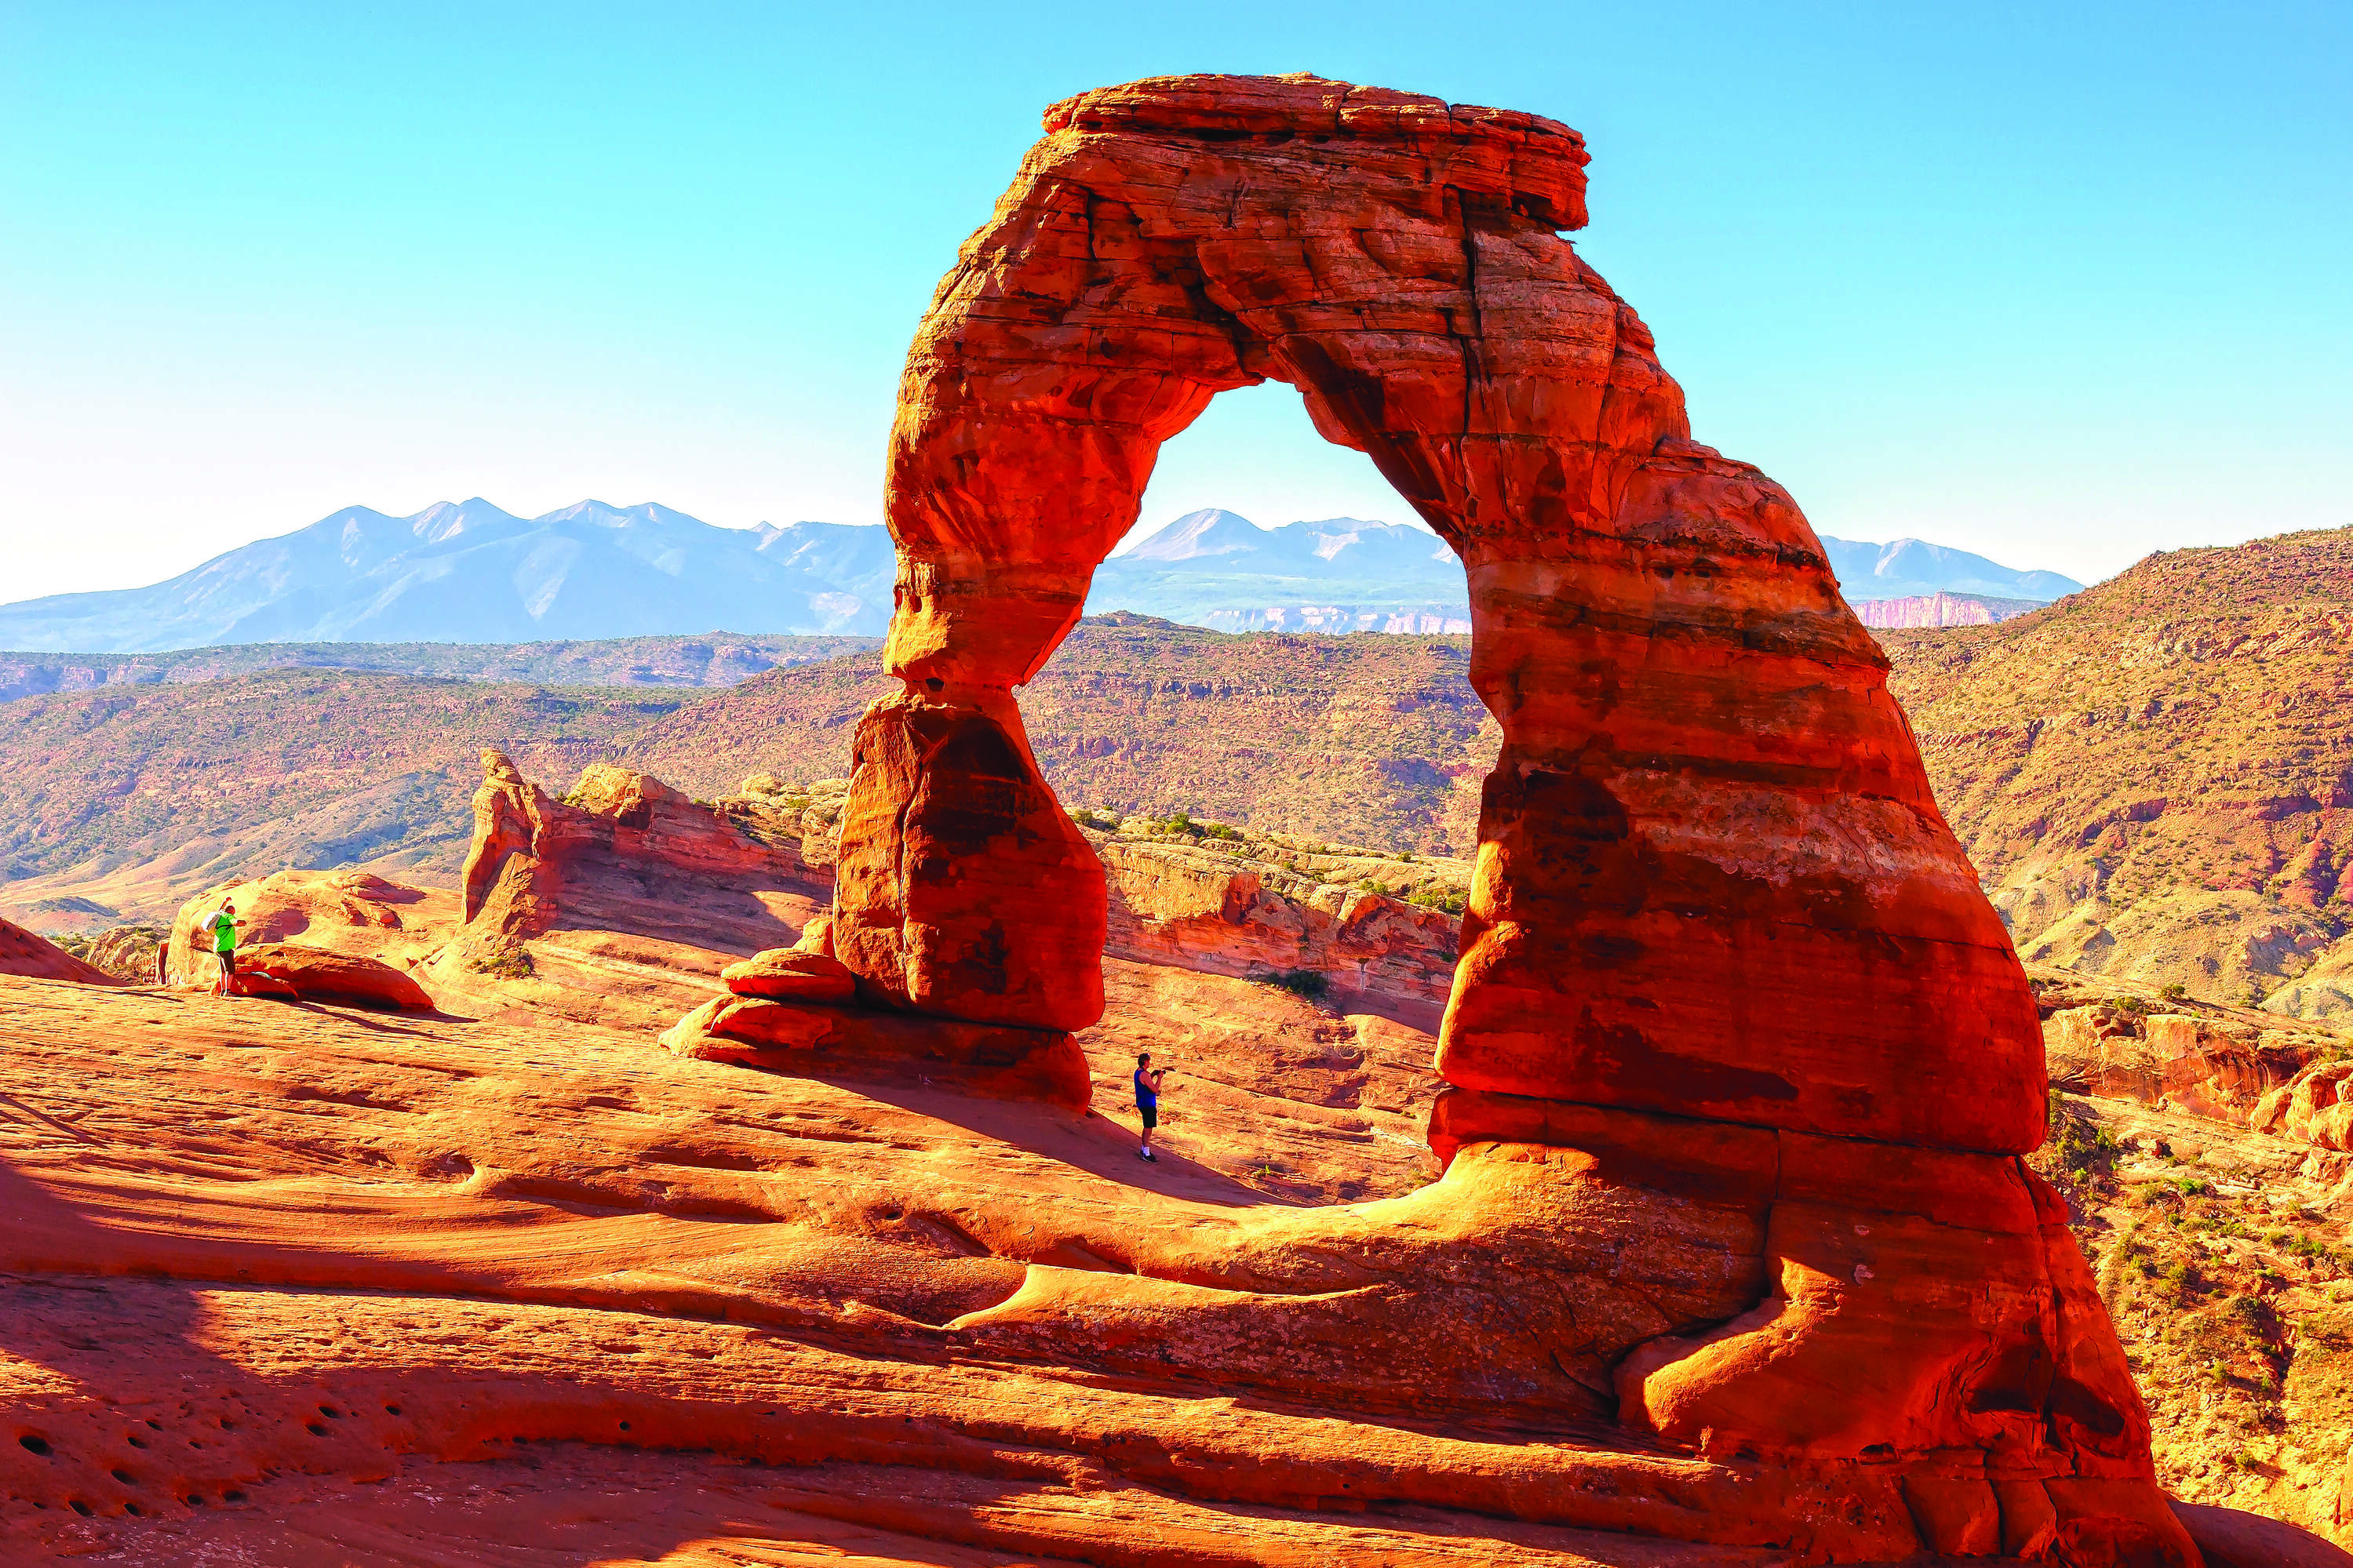 Painted Canyons of the West featuring Utah's Five National Parks